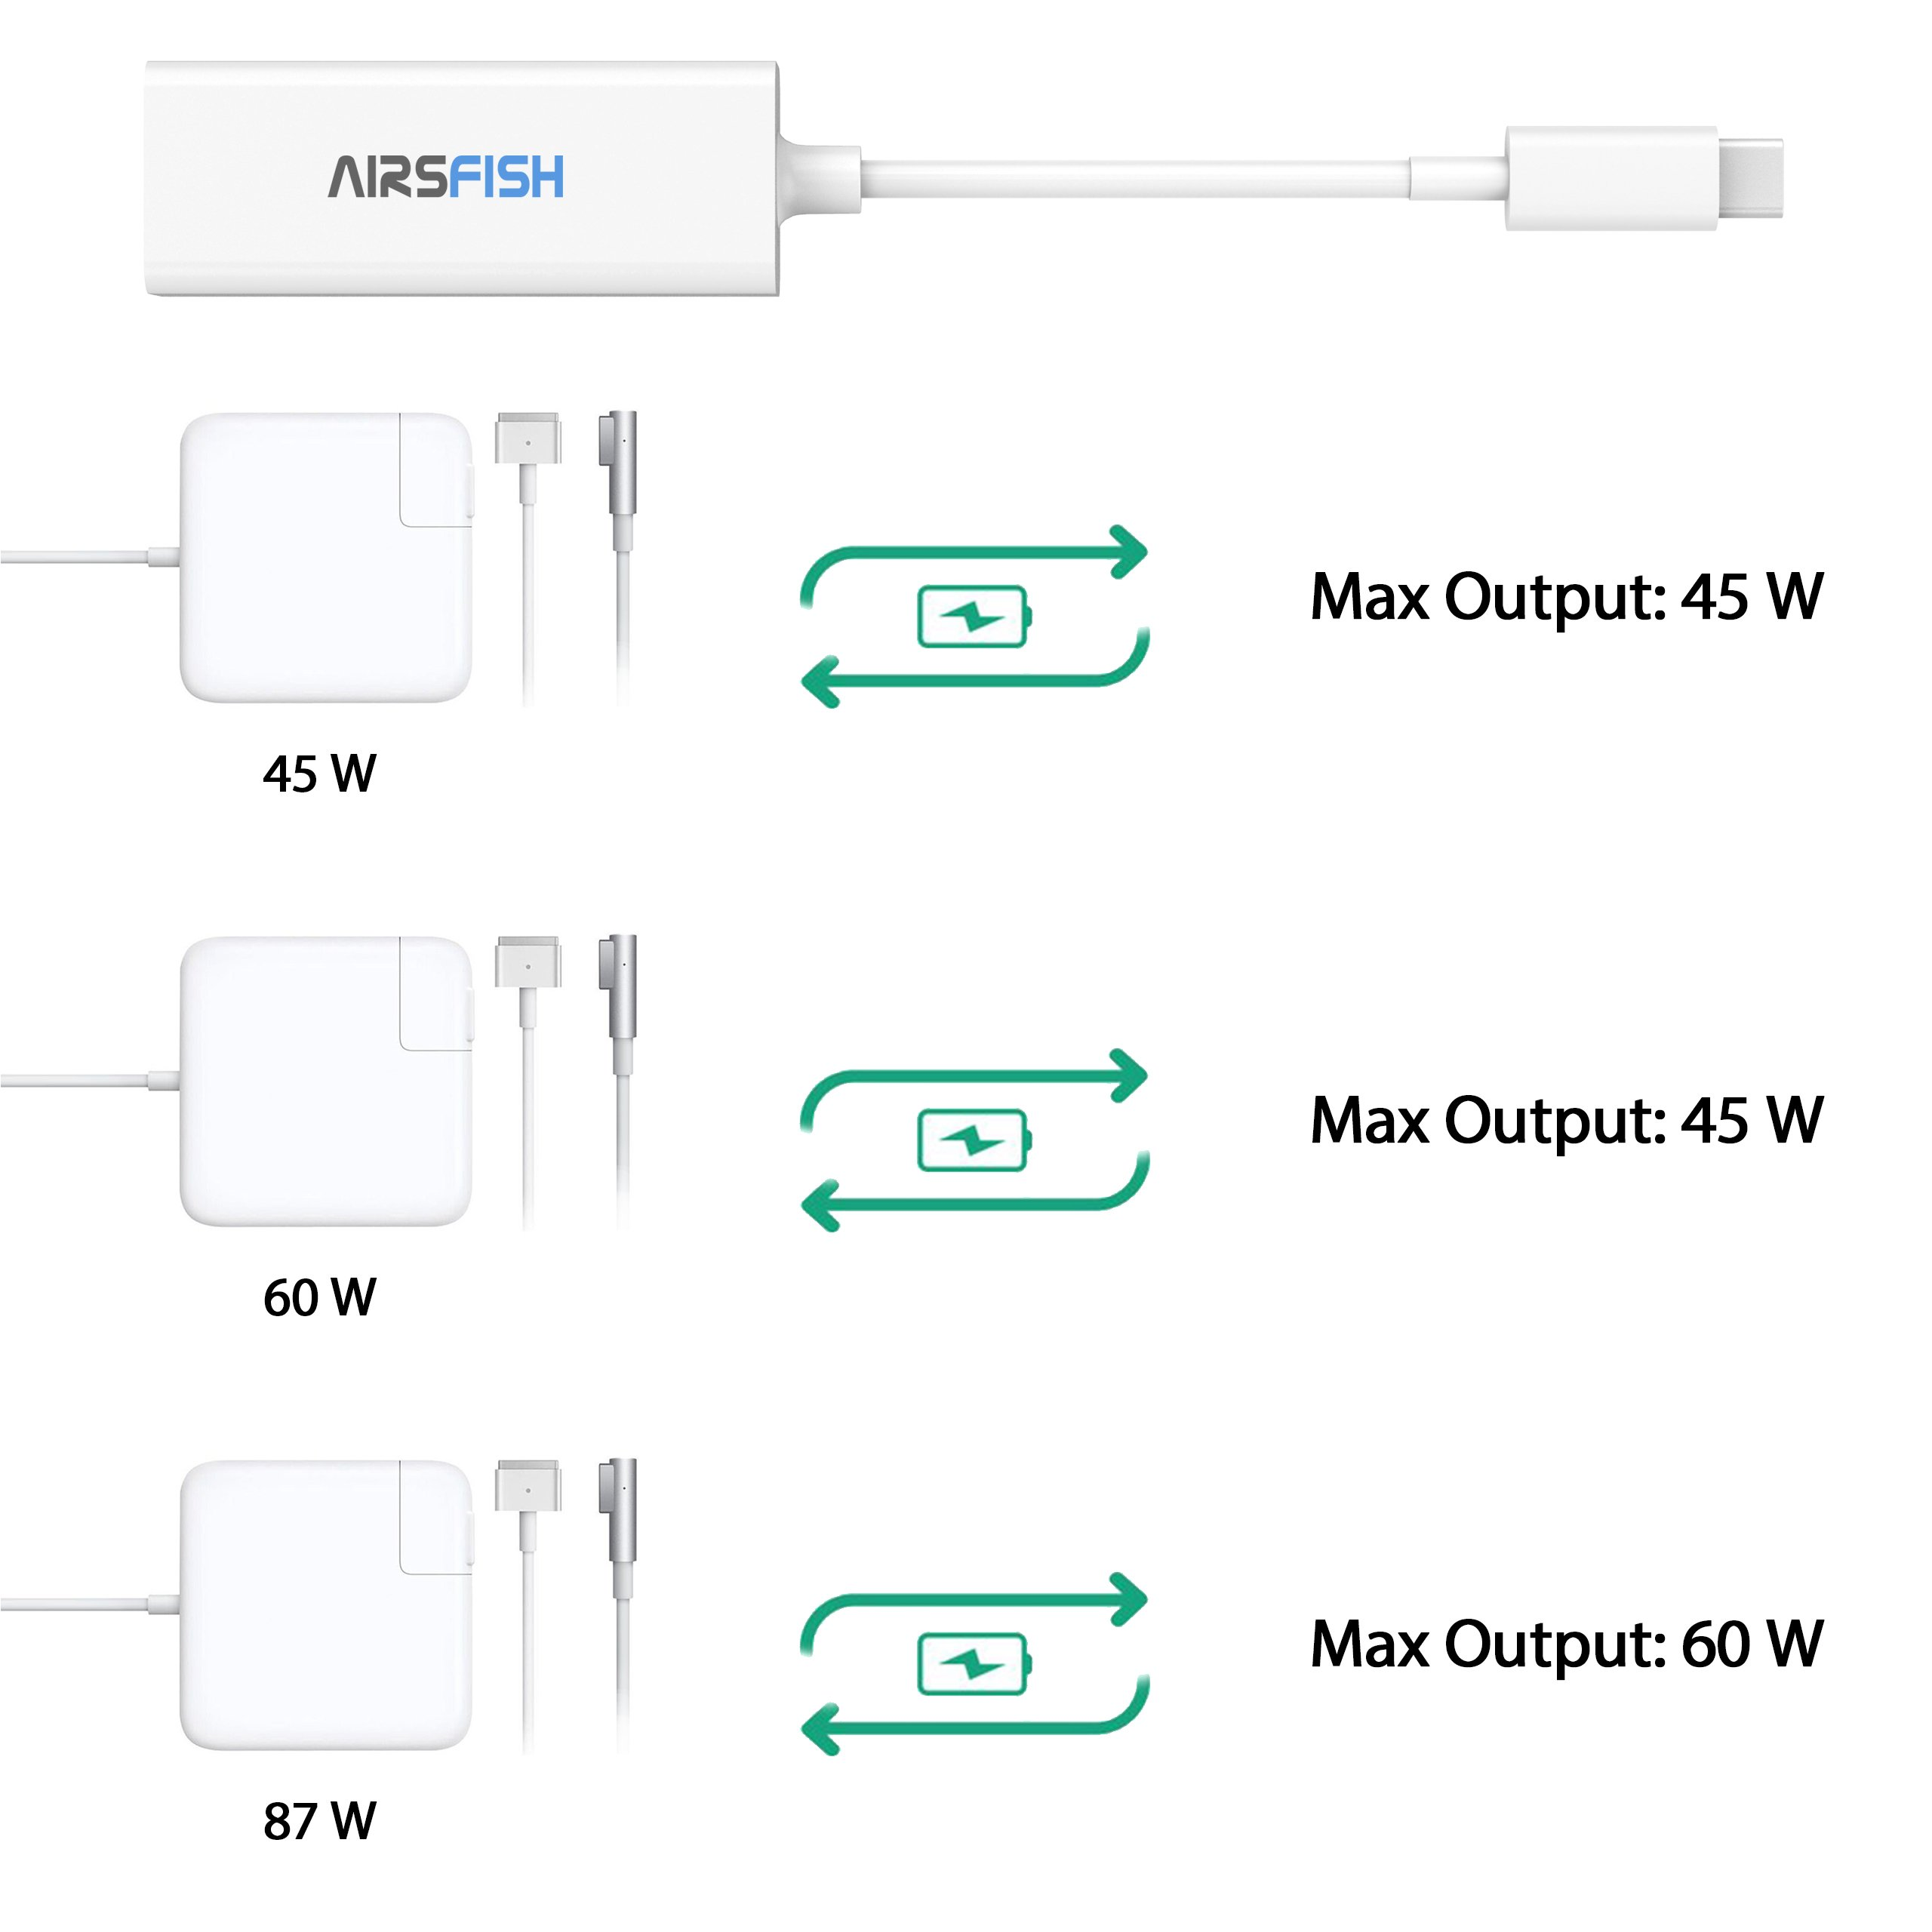 USB C Converter, AirsFish USB Type C to 1 (L- Tip) and 2 (T-Tip) Power Adapter Connector Cable Compatible MacBook/MacBook Pro/Switch/Laptop/Phone and Other USB C Devices by AirsFish (Image #3)